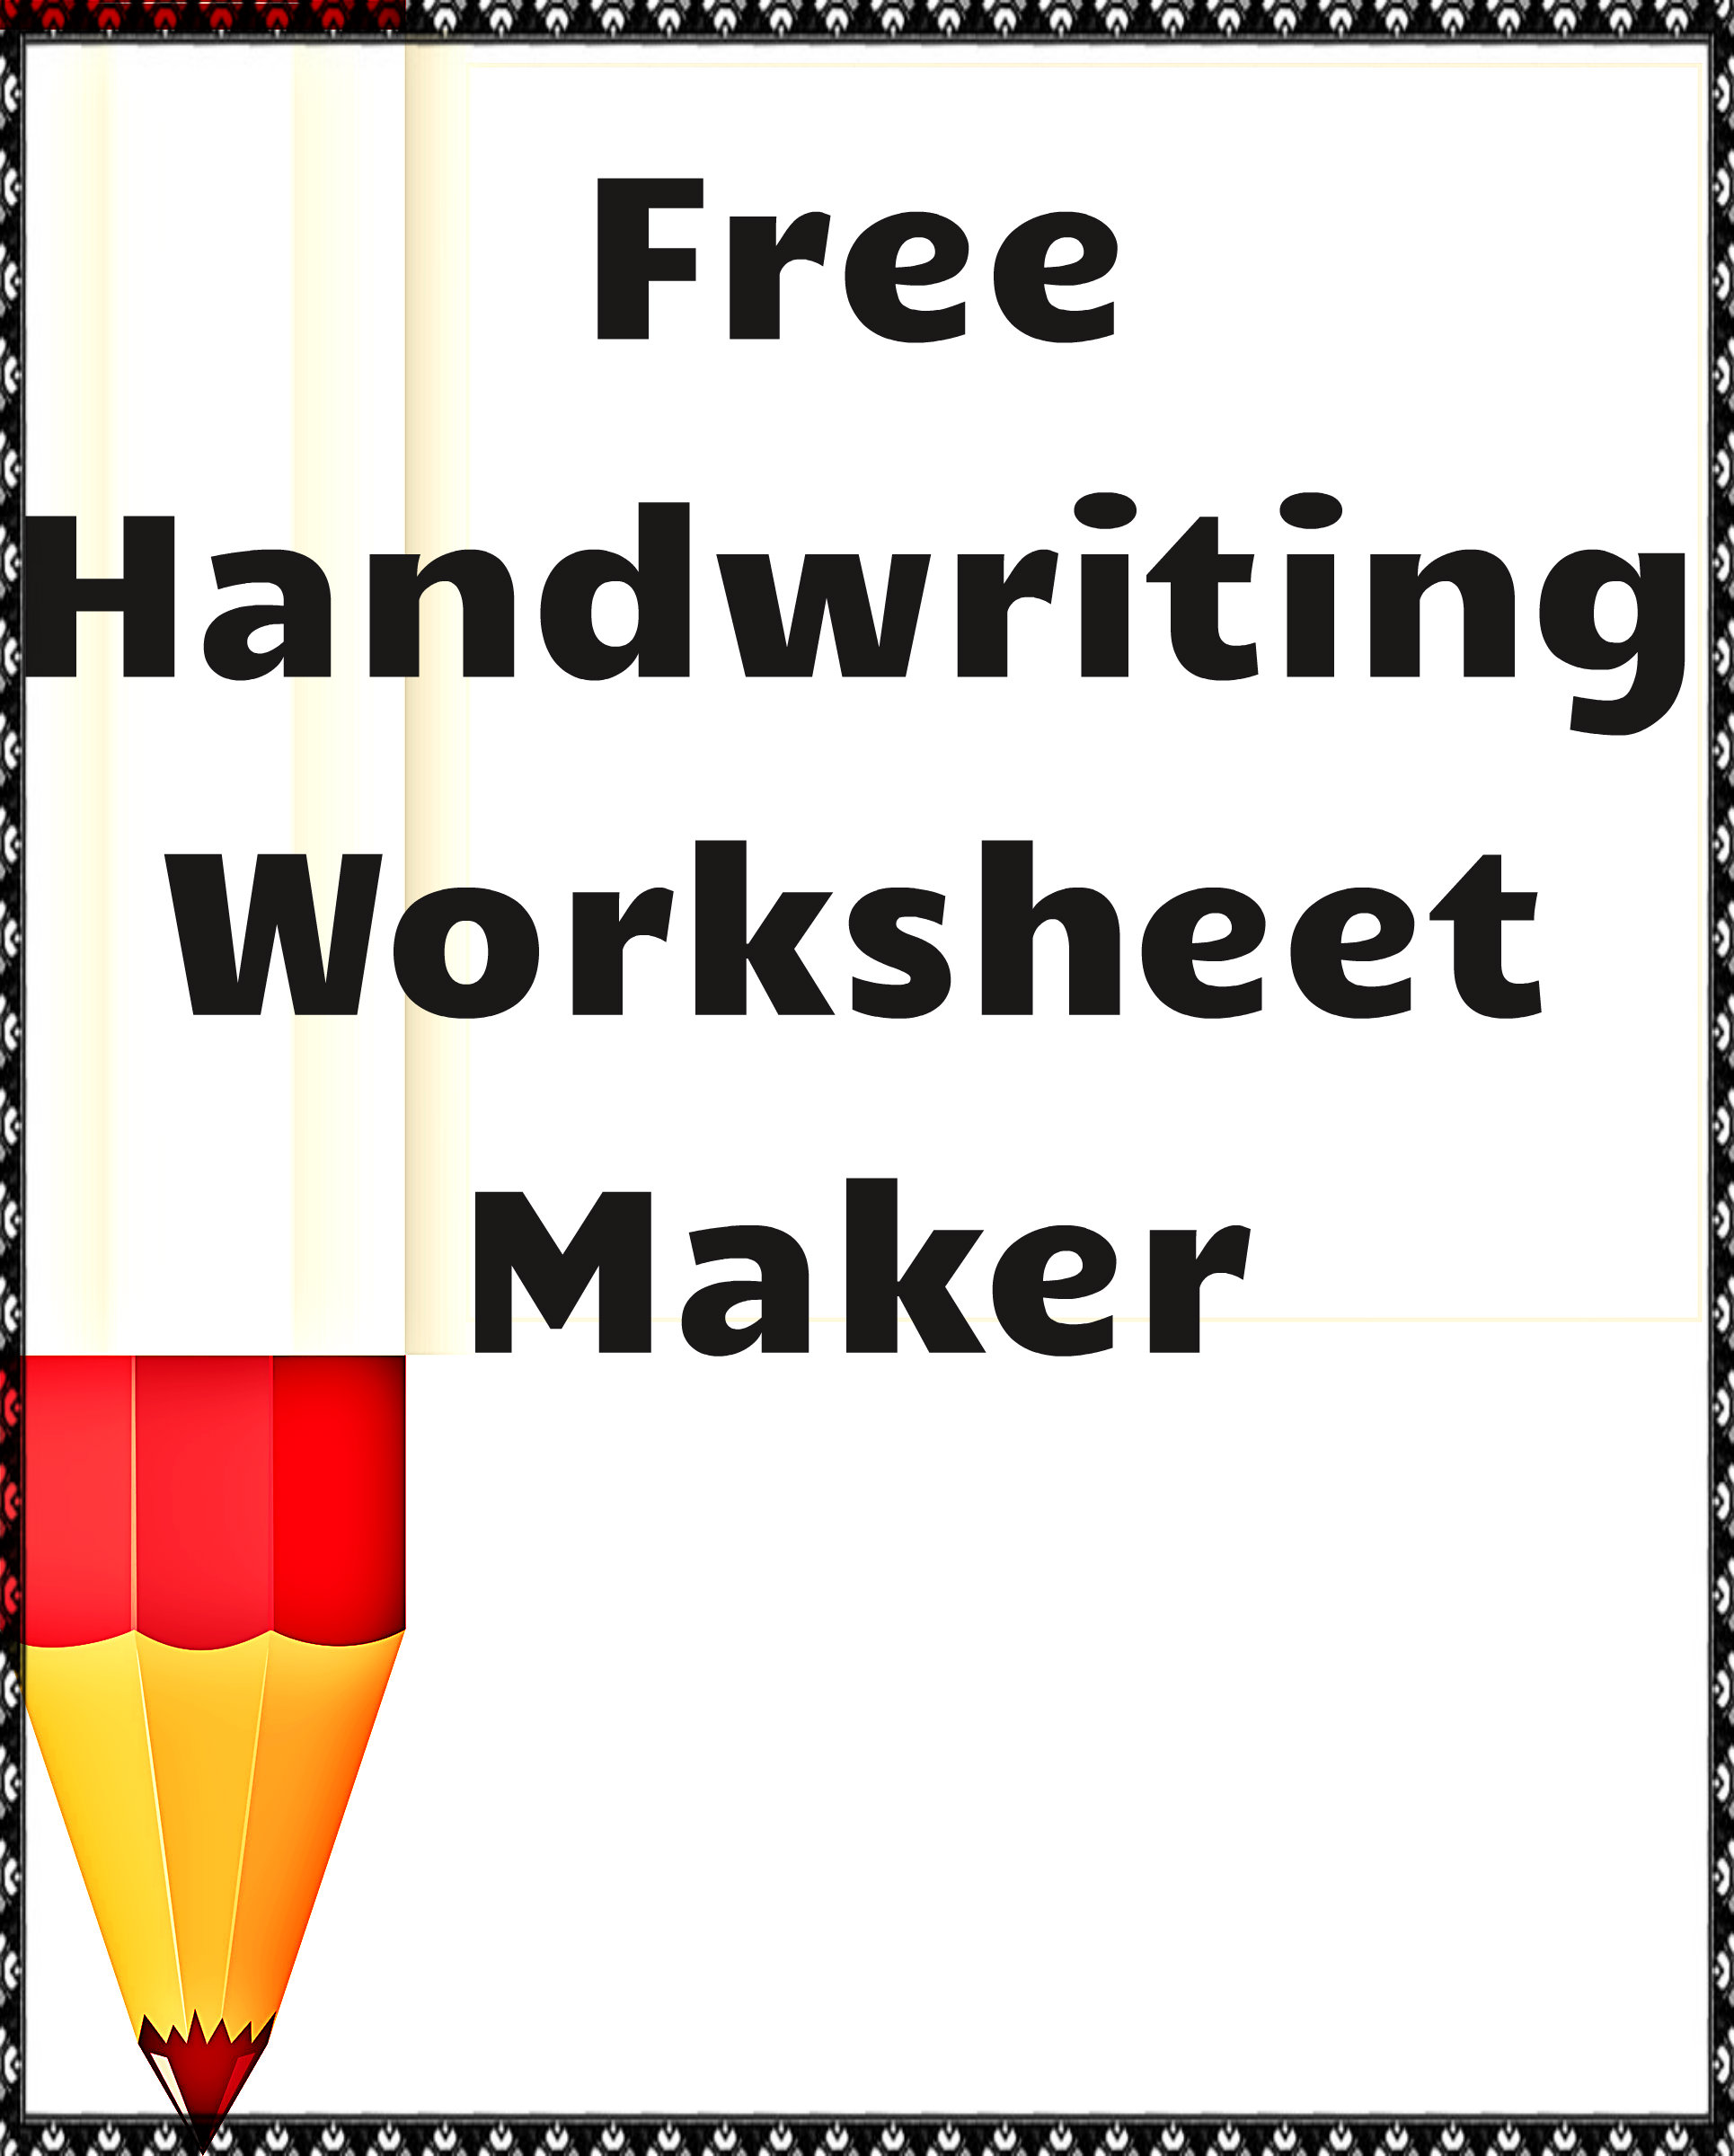 Worksheets Kindergarten Handwriting Worksheet Maker handwriting worksheet maker free classroom tools readyteacher com maker